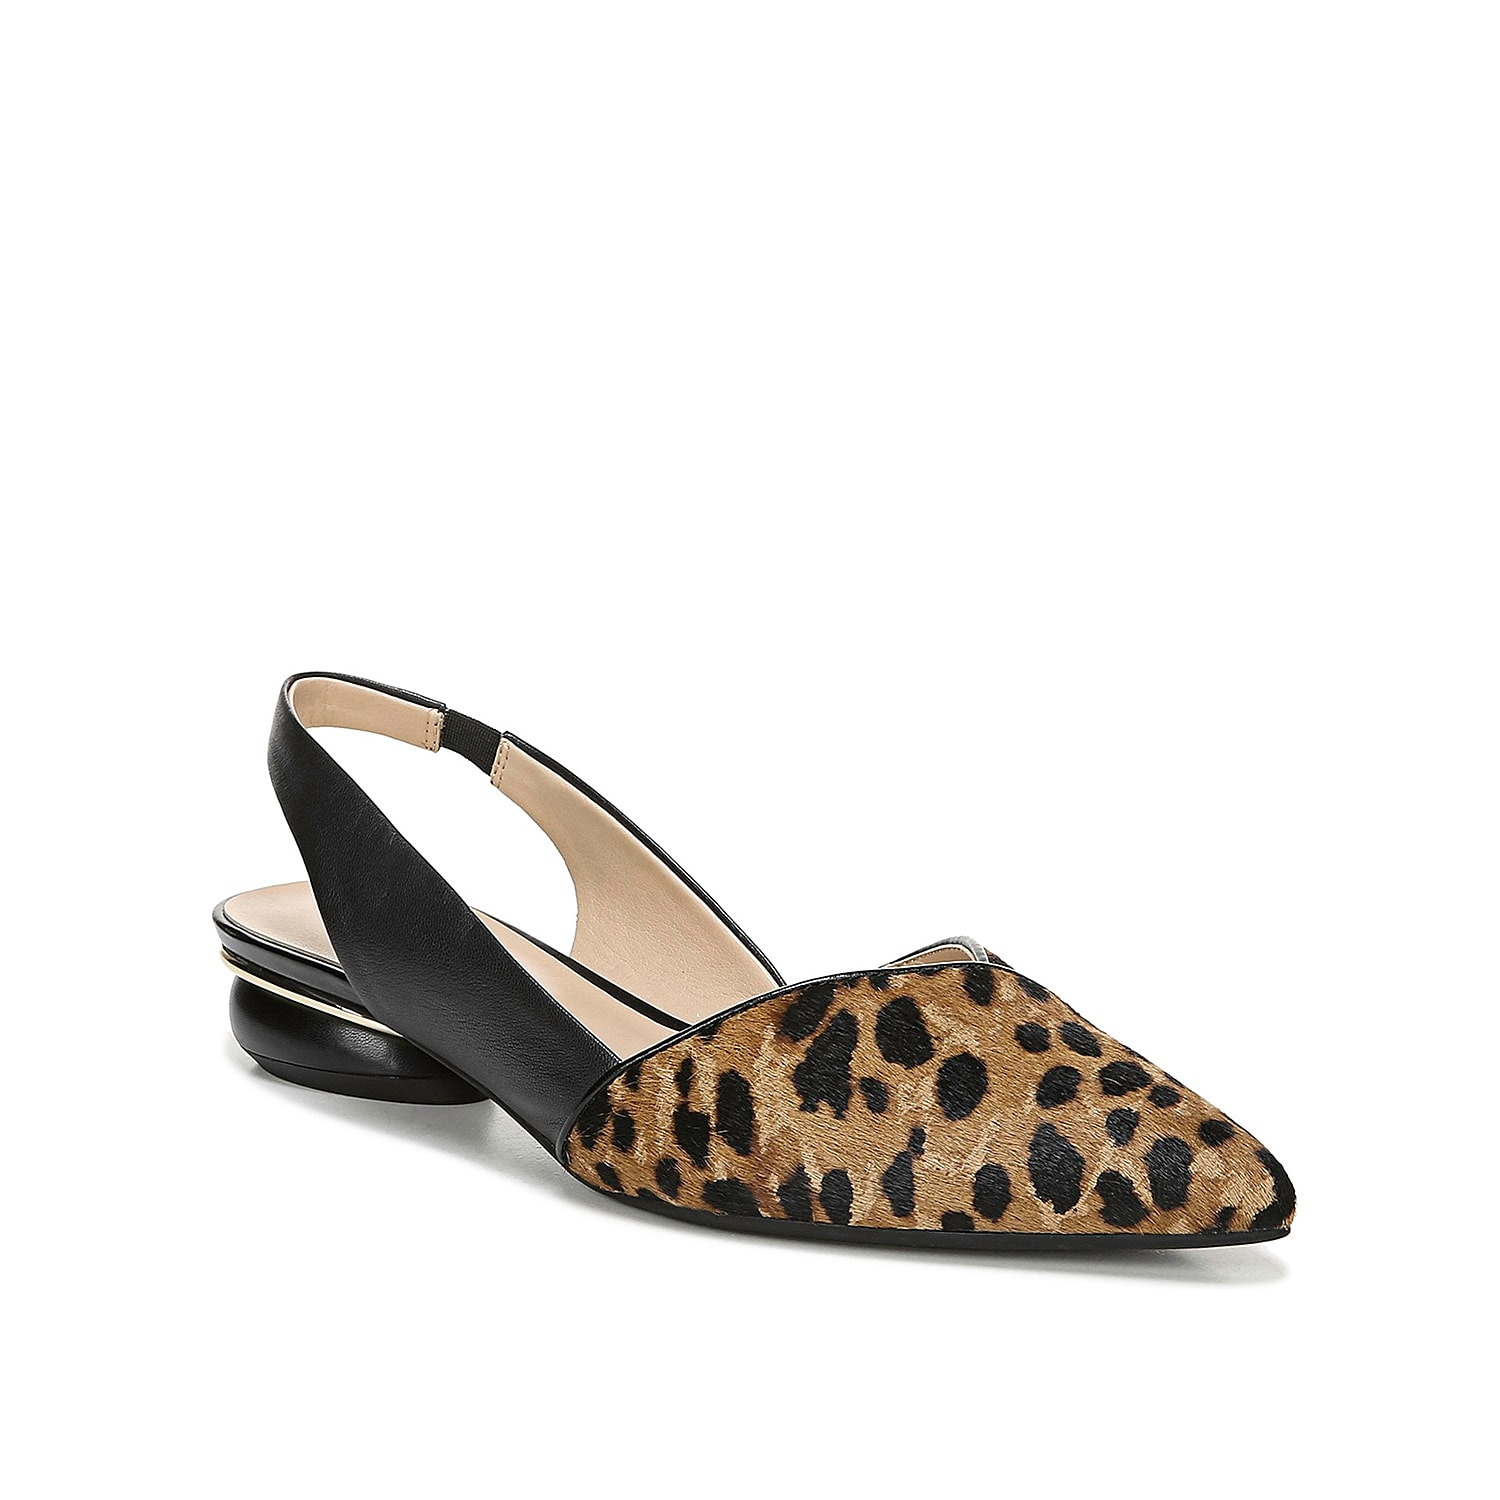 Bring a voguish look to your ensemble with the Rosaline flat from Franco Sarto. This slip-on is fashioned with a pointed toe and an animal print design that will give your shoe collection eye-catching style!